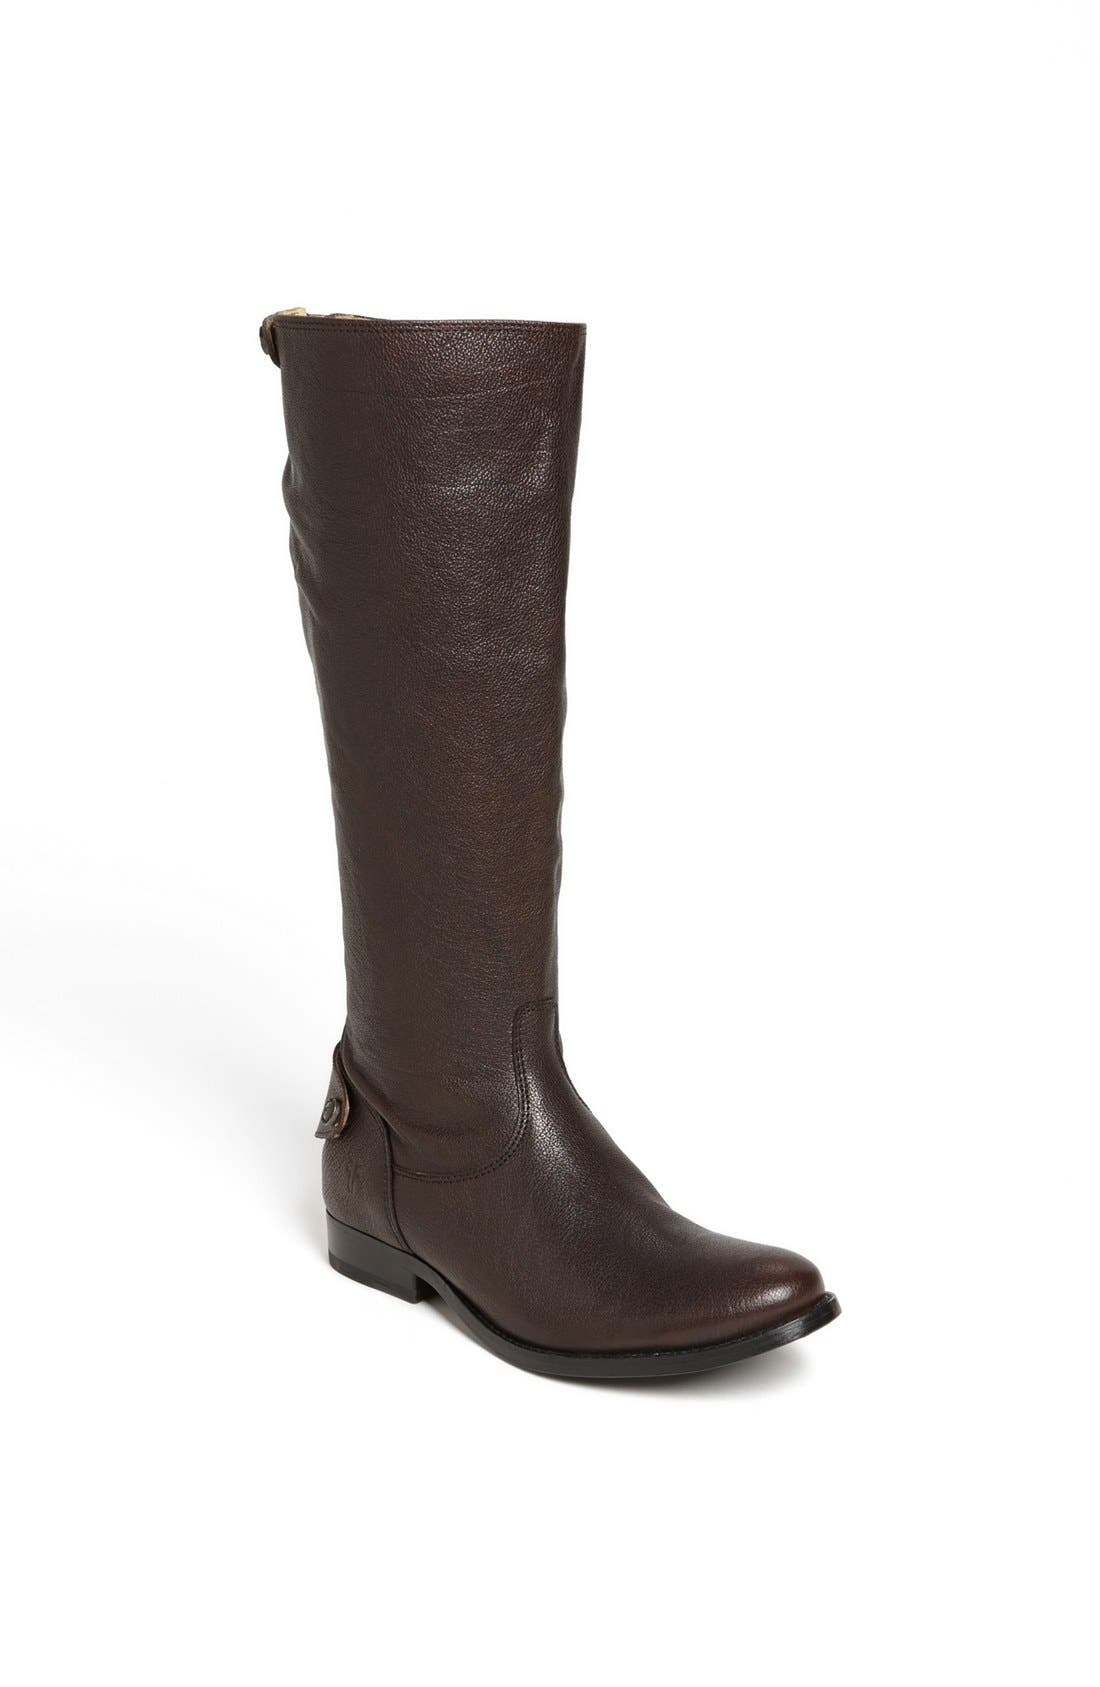 Alternate Image 1 Selected - FRYE MELISSA BUTTON BACK ZIP BOOT